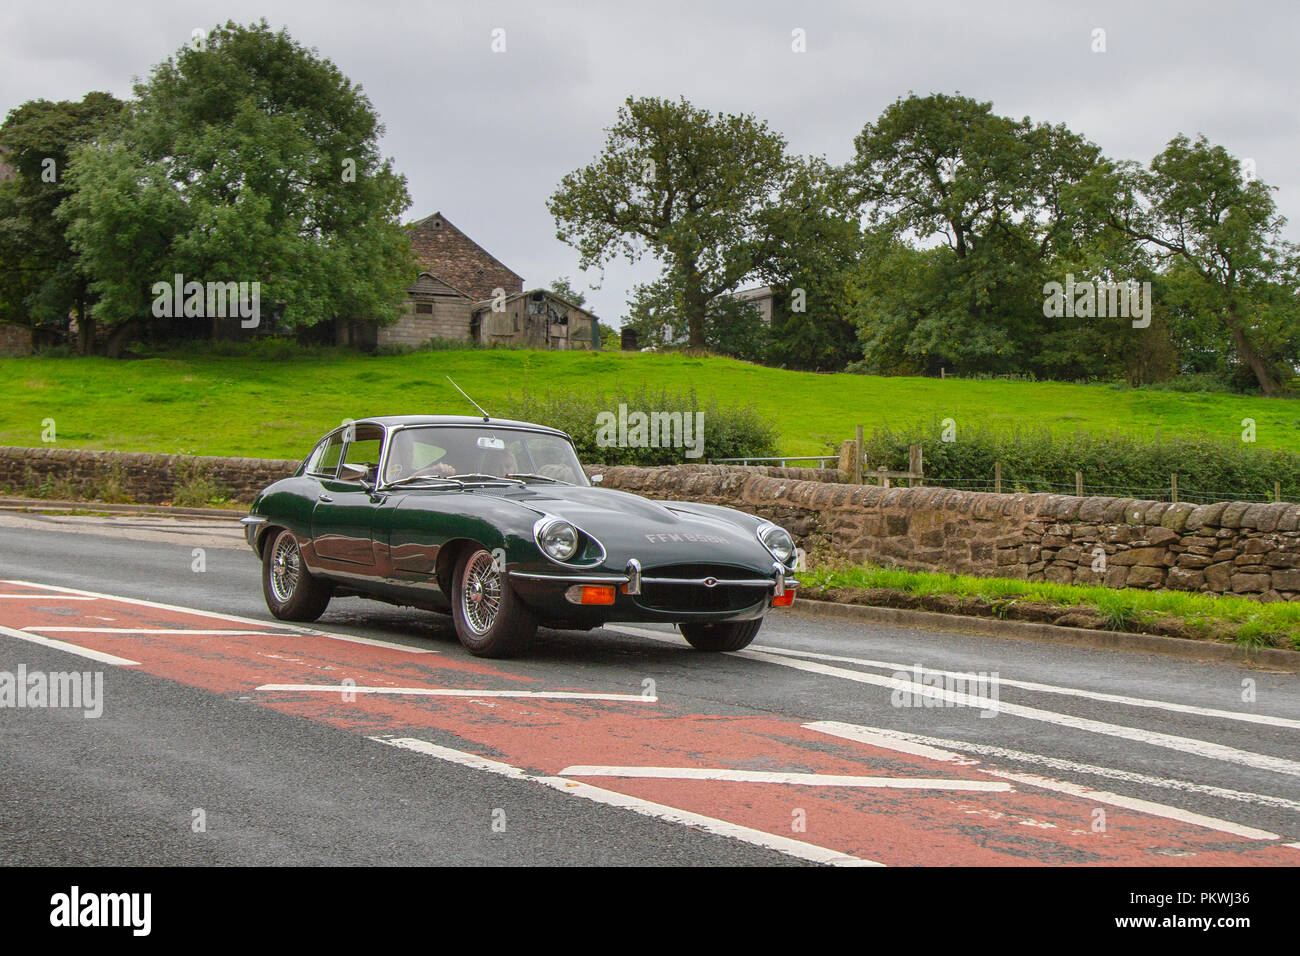 Green 1970 Jaguar Classic, vintage, veteran, cars of yesteryear, restored collectibles at Hoghton Tower Class Cars Rally, UK - Stock Image